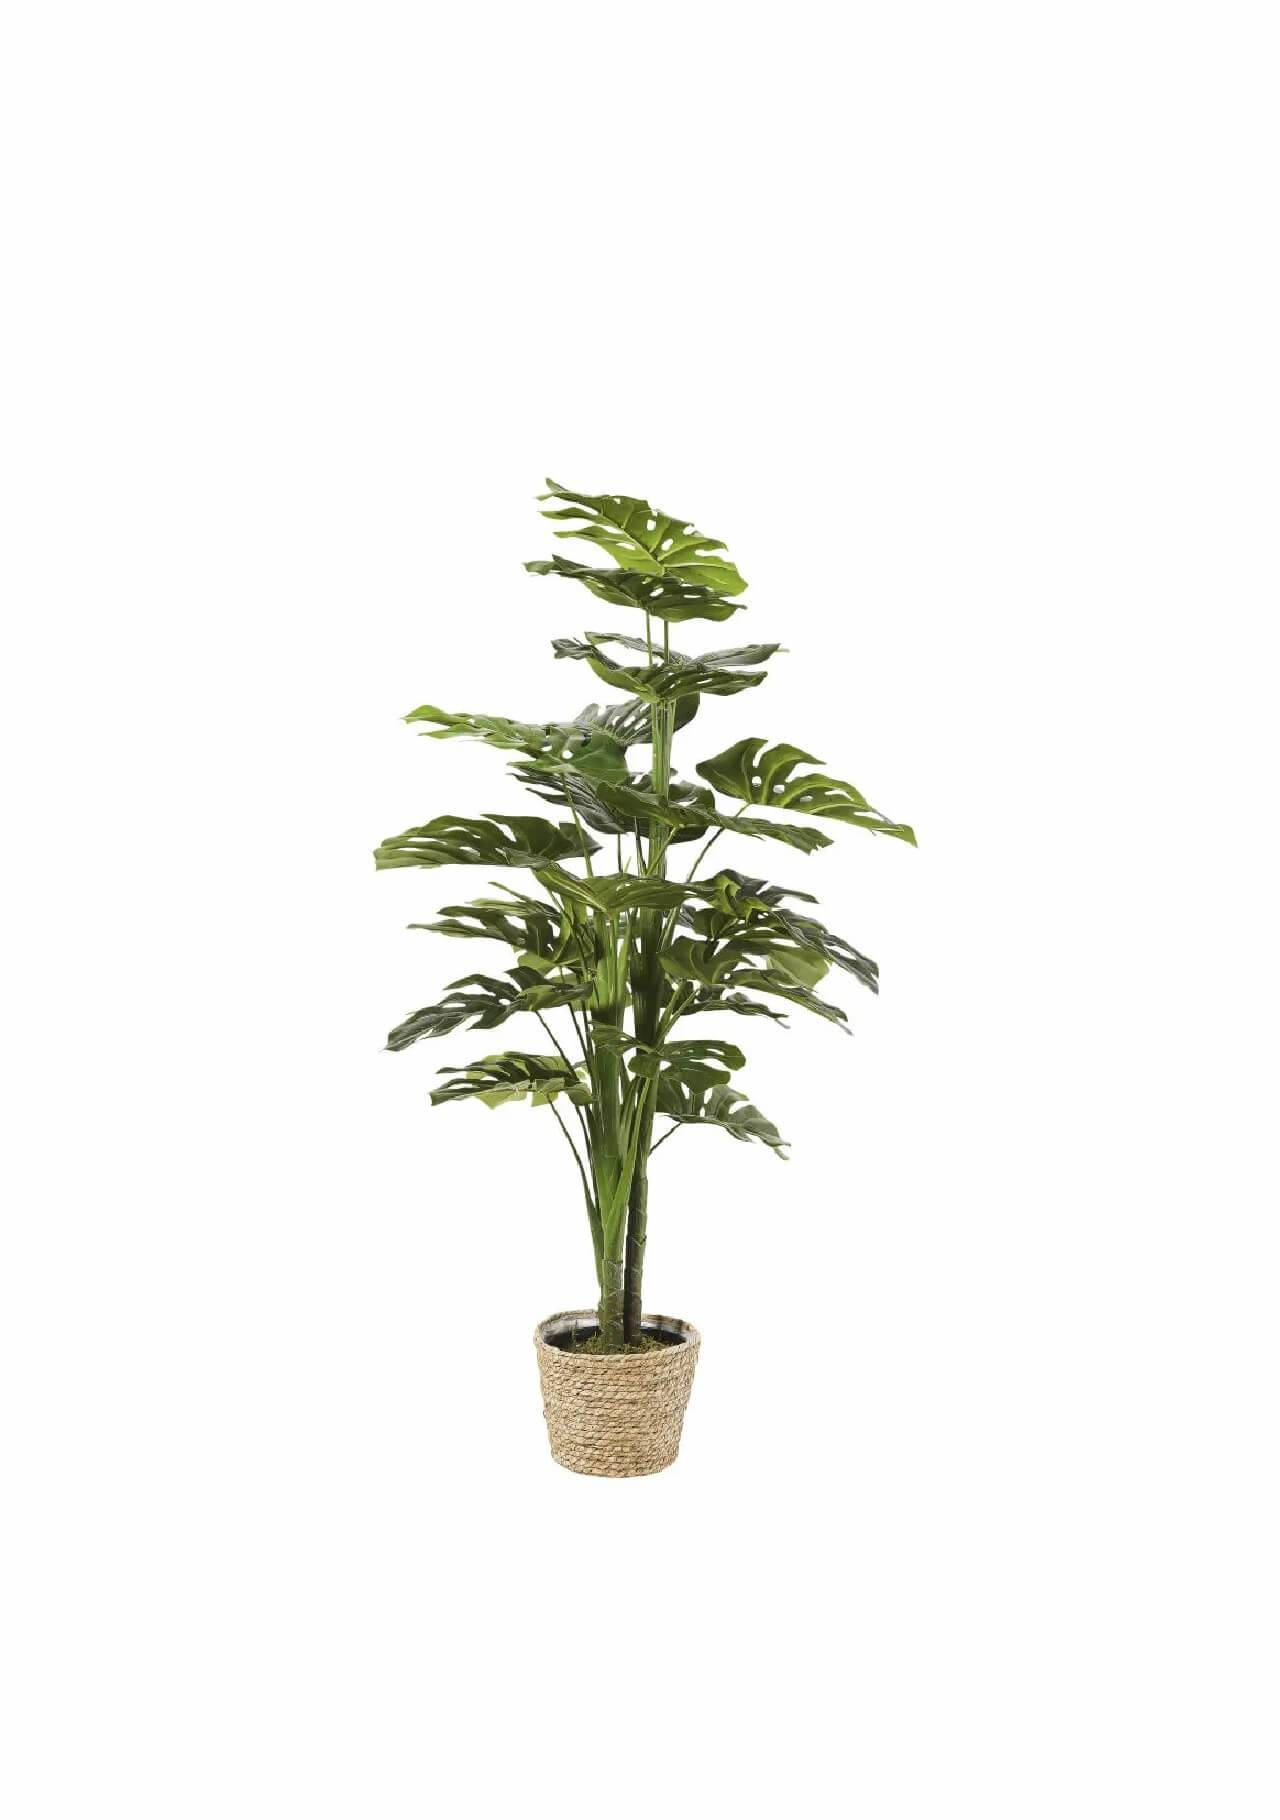 plantas artificiales bonitas monstera Maisons du Monde, 69,99€